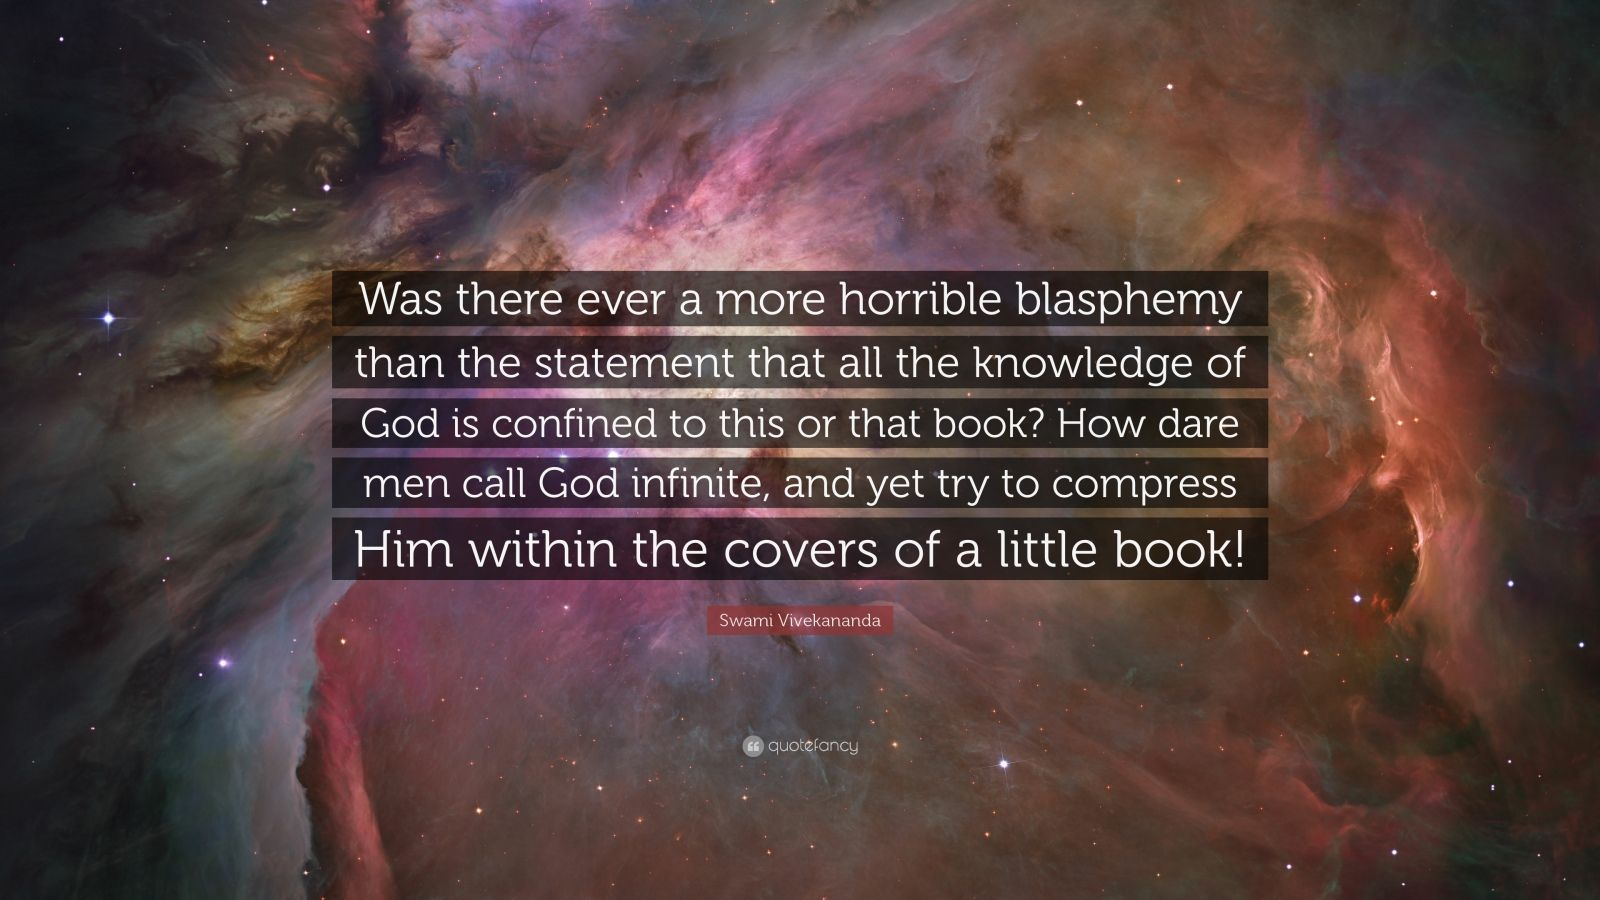 "Swami Vivekananda Quote: ""Was there ever a more horrible blasphemy than the statement that all the knowledge of God is confined to this or that book? How dare men call God infinite, and yet try to compress Him within the covers of a little book!"""